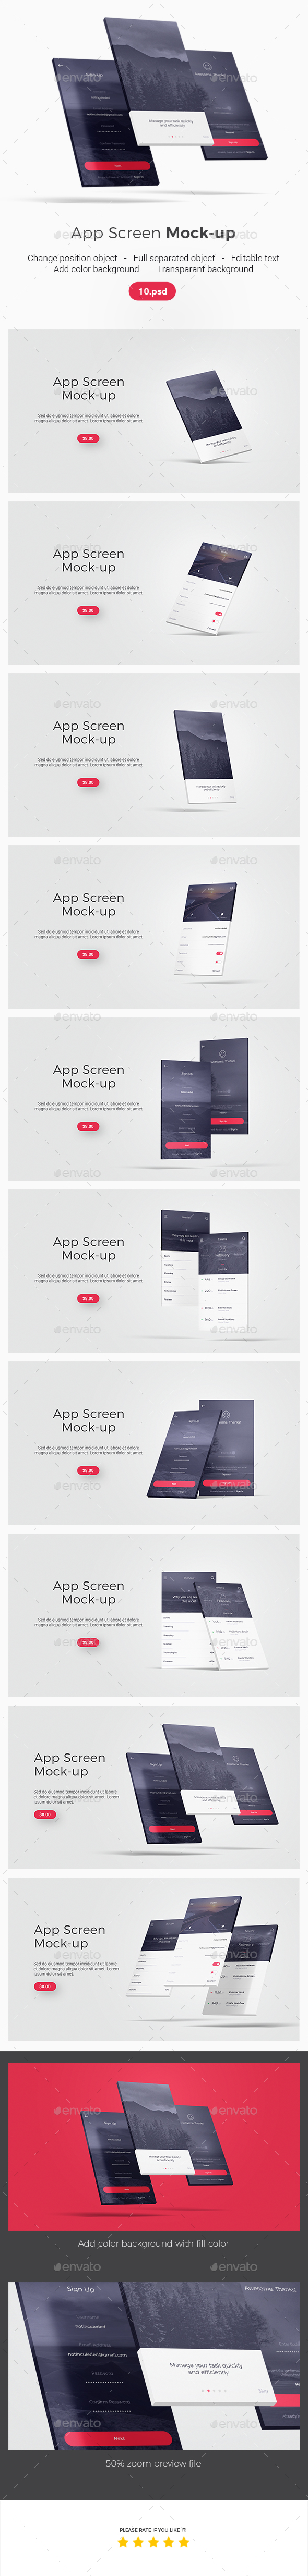 GraphicRiver App Screen Mockup 21165365